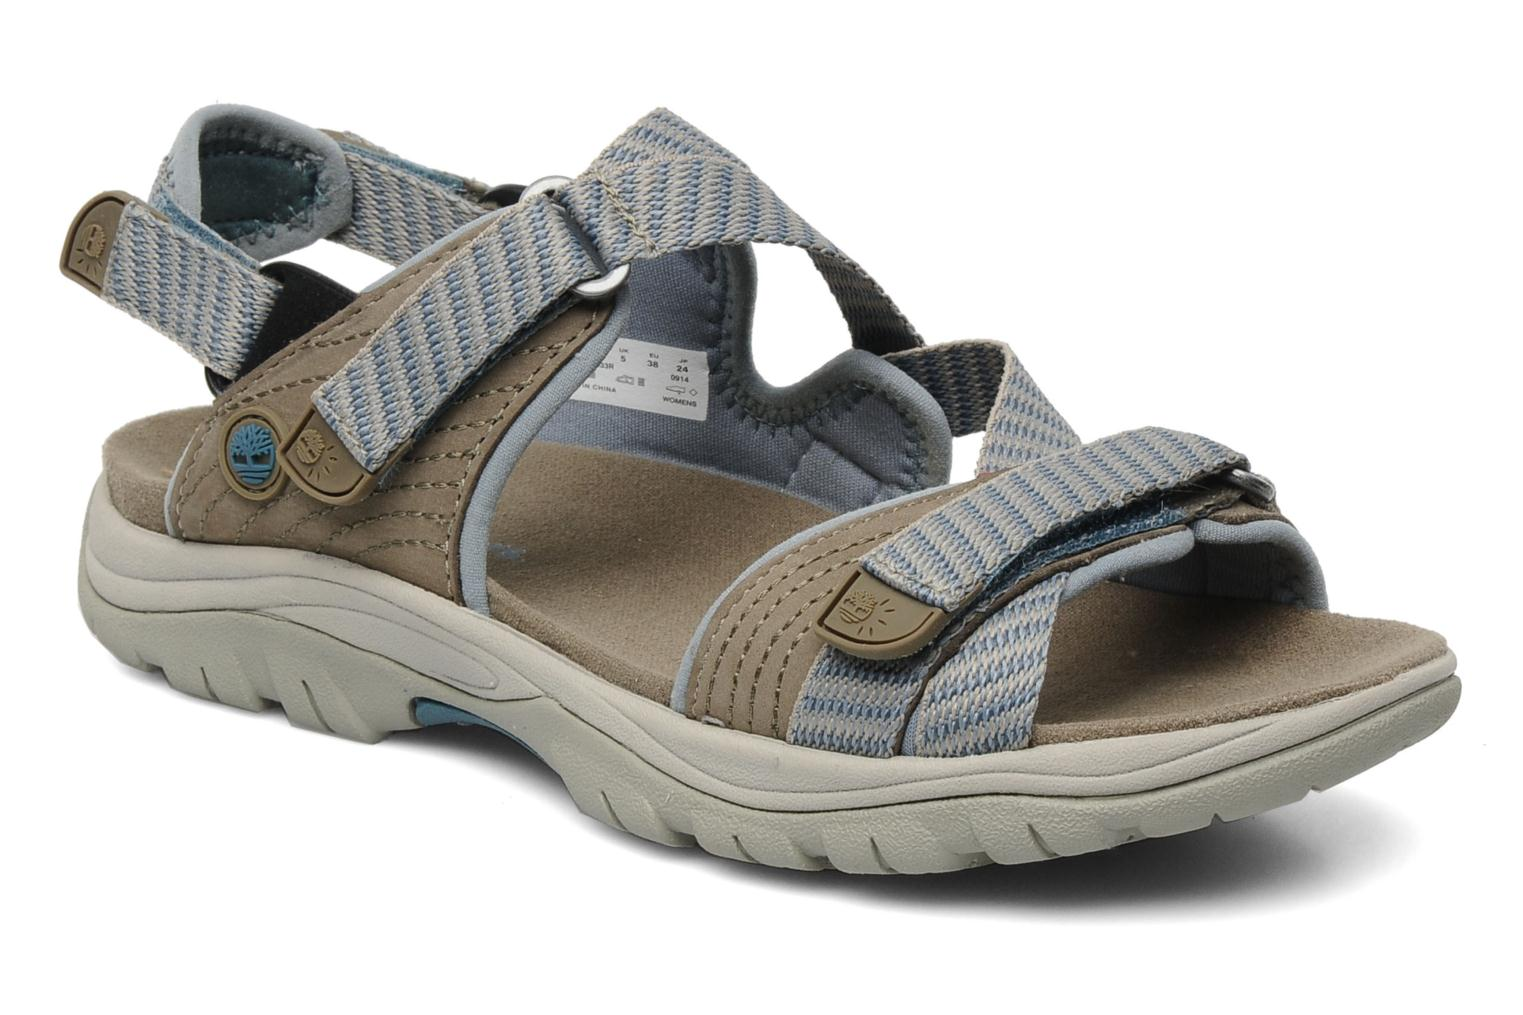 Earthkeepers Jordan Pond Sandal Warm Grey with Blue